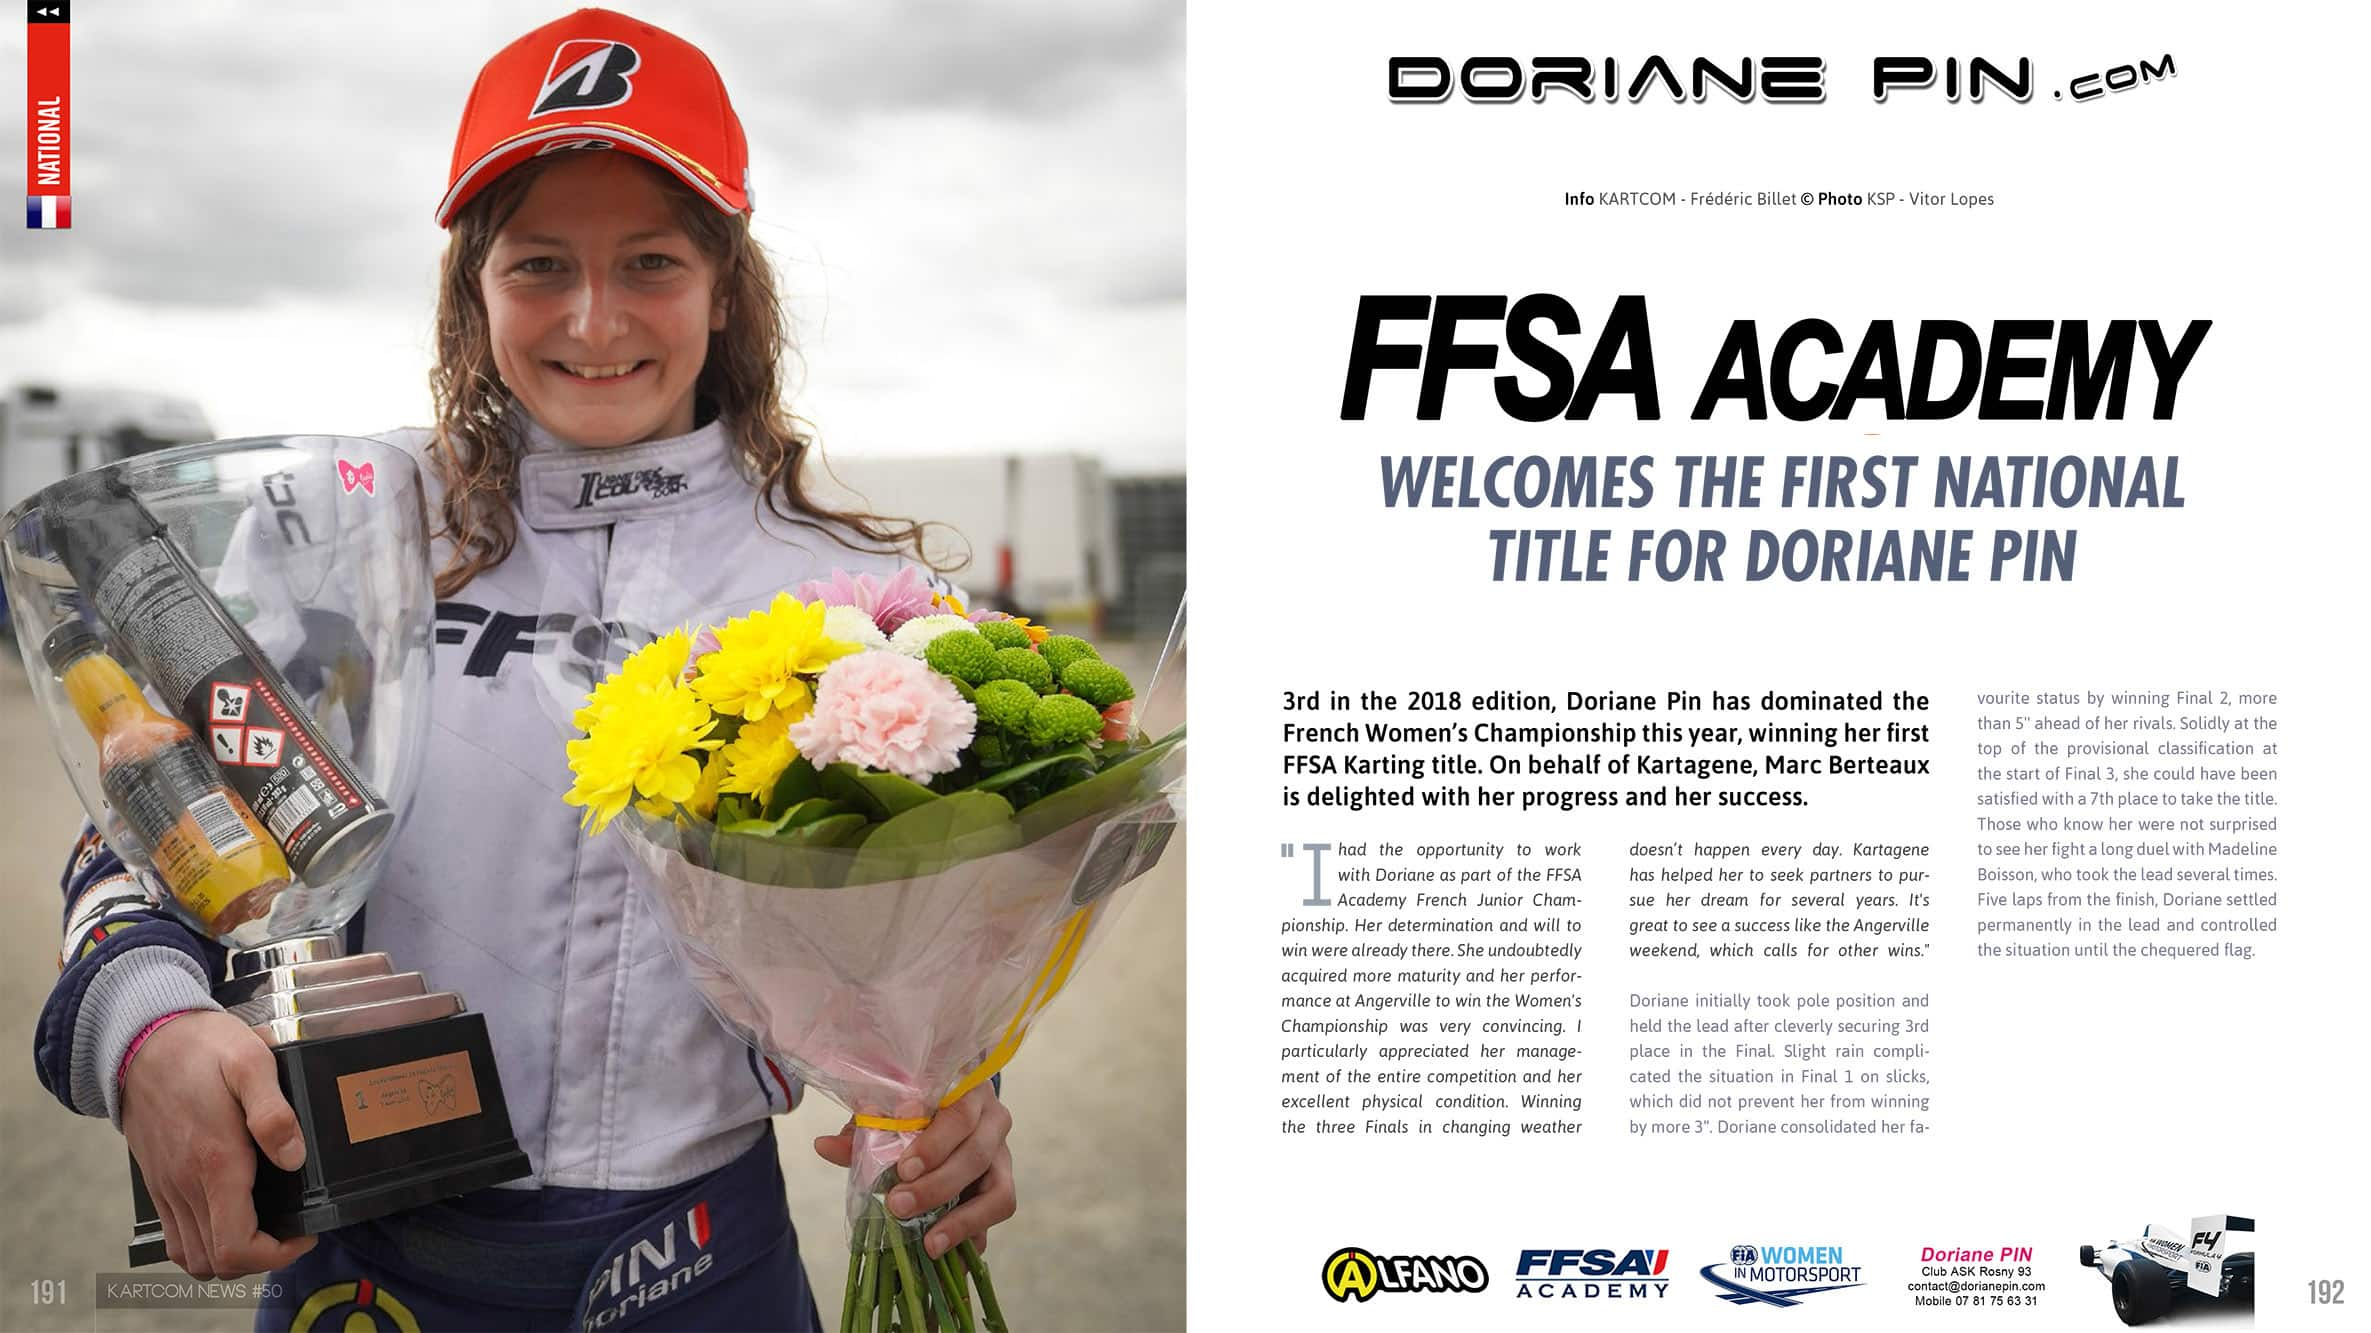 FFSA Academy welcomes Doriane Pin for her first national title in Karting 2019 , post april 2019